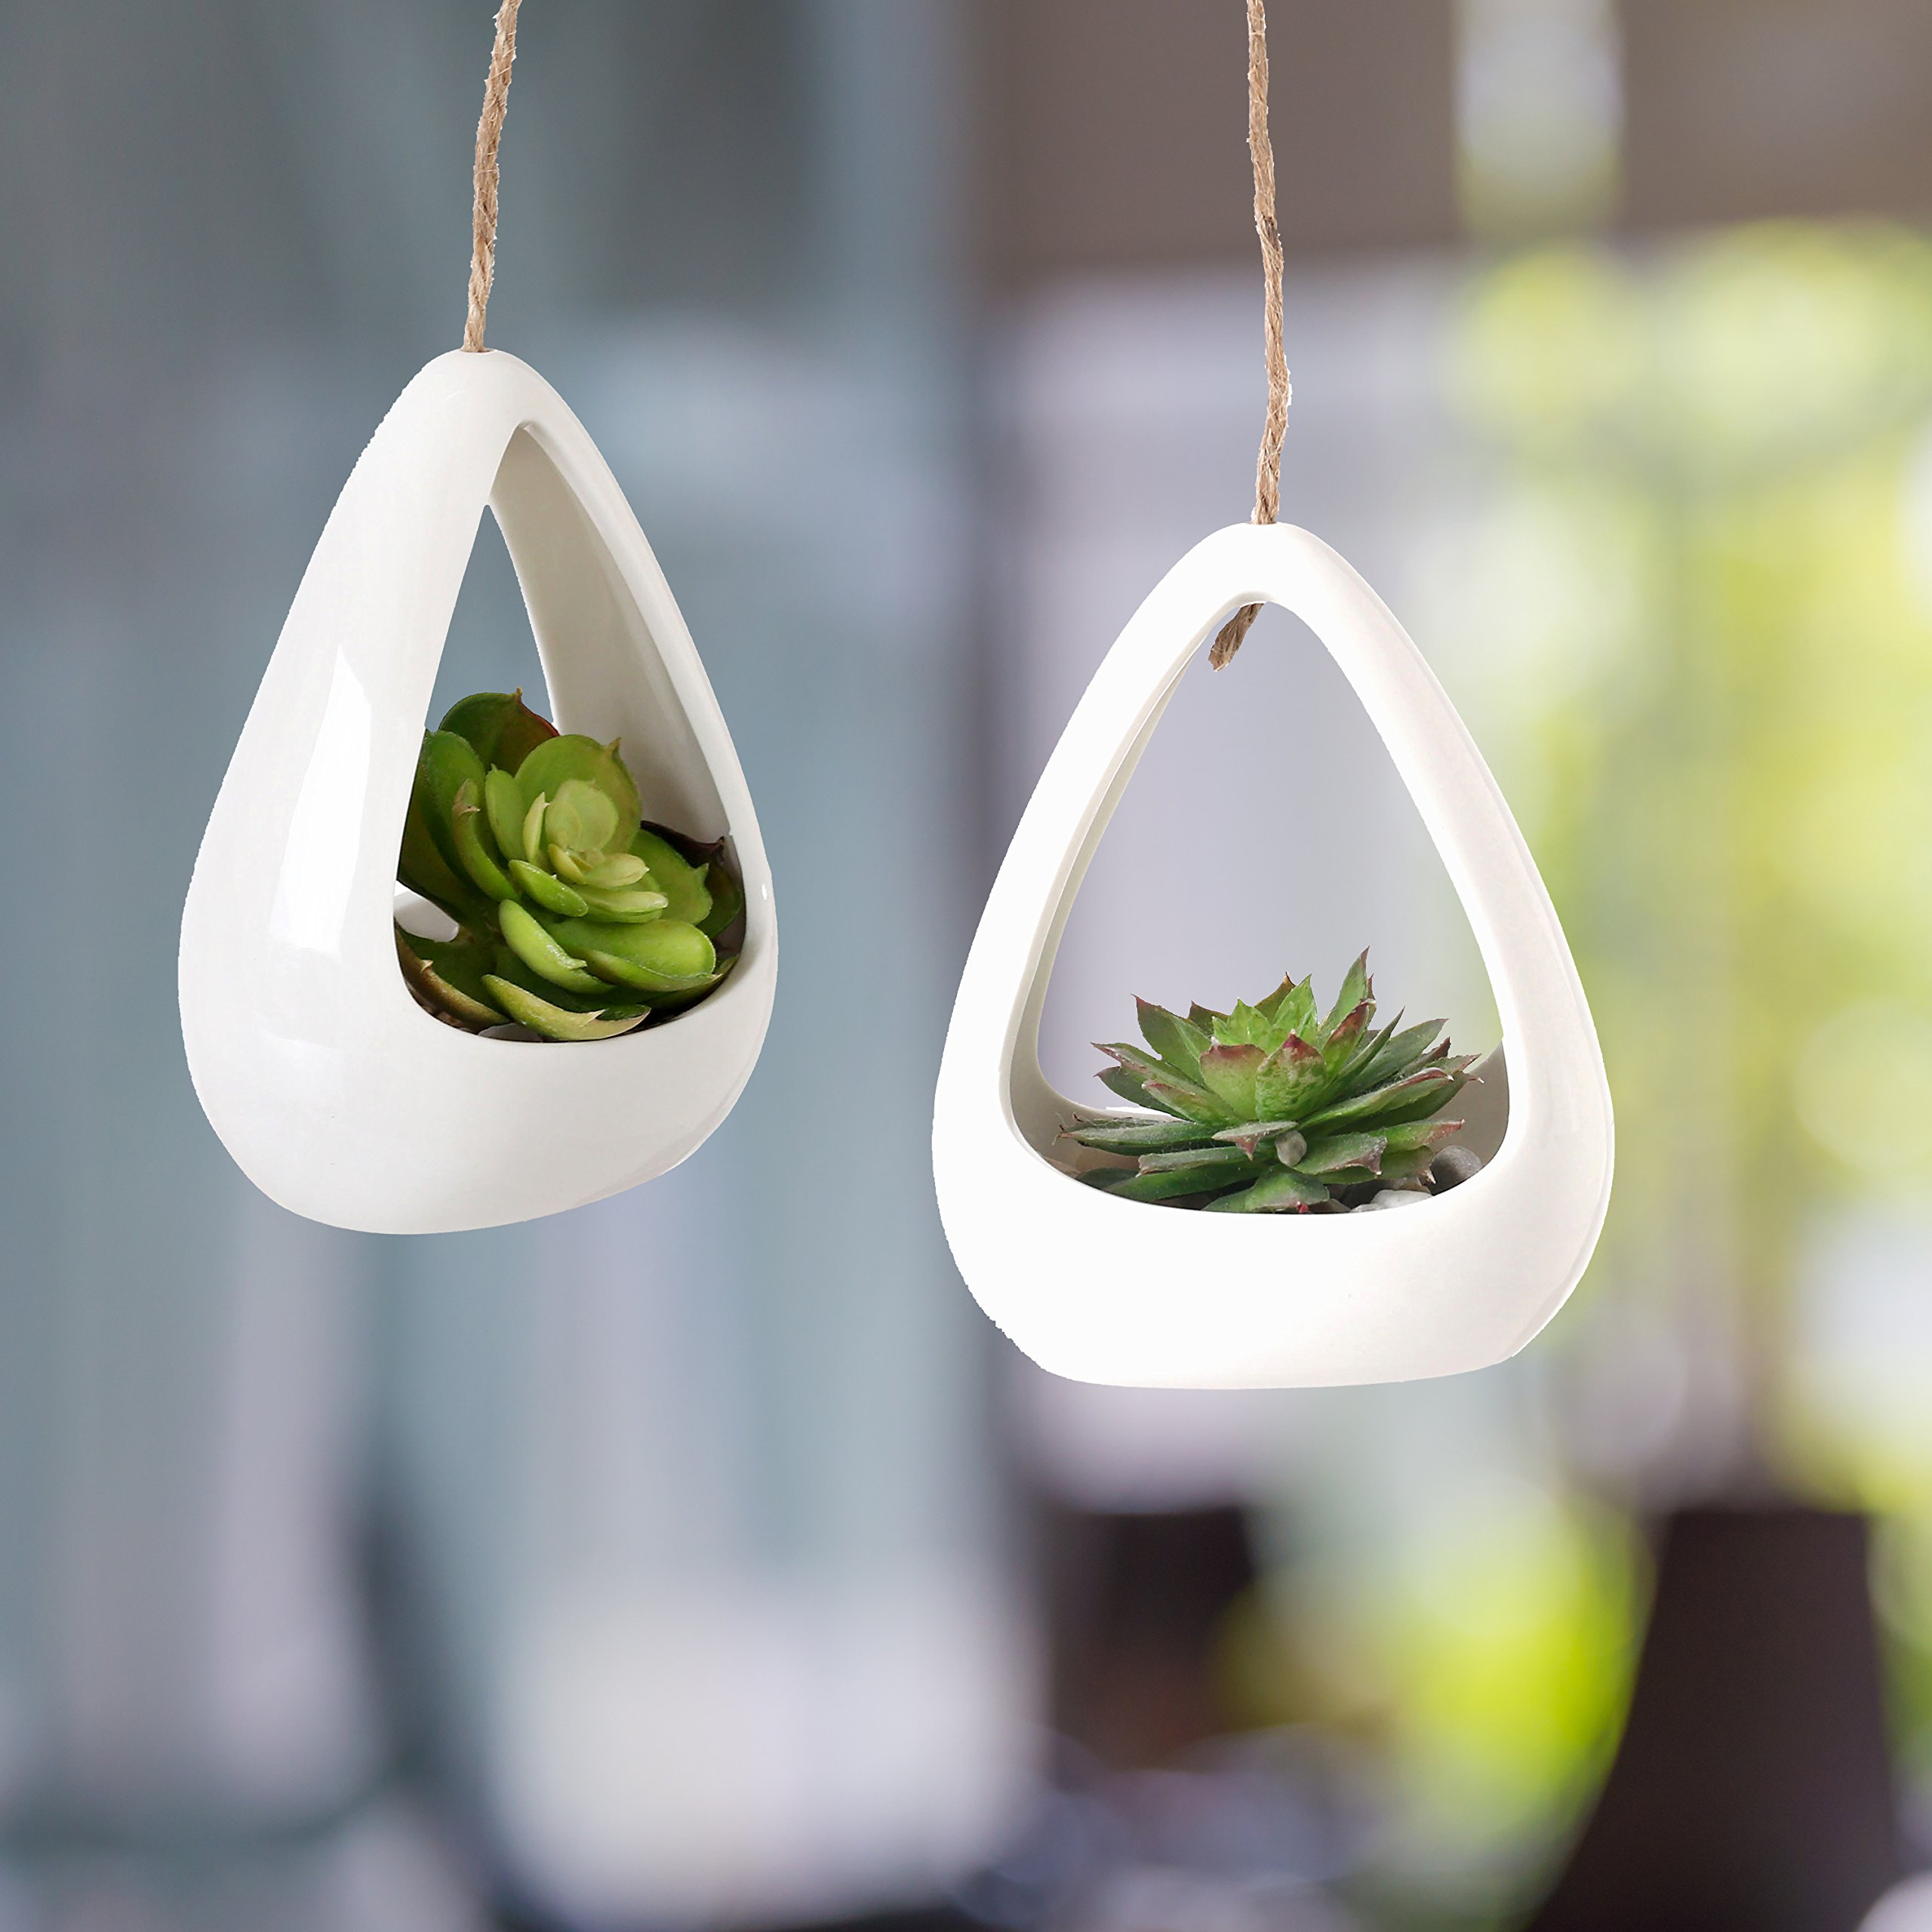 Modern White Ceramic Pod-Shaped Mini Hanging Planters with Twine Rope, Set of 2 by MyGift